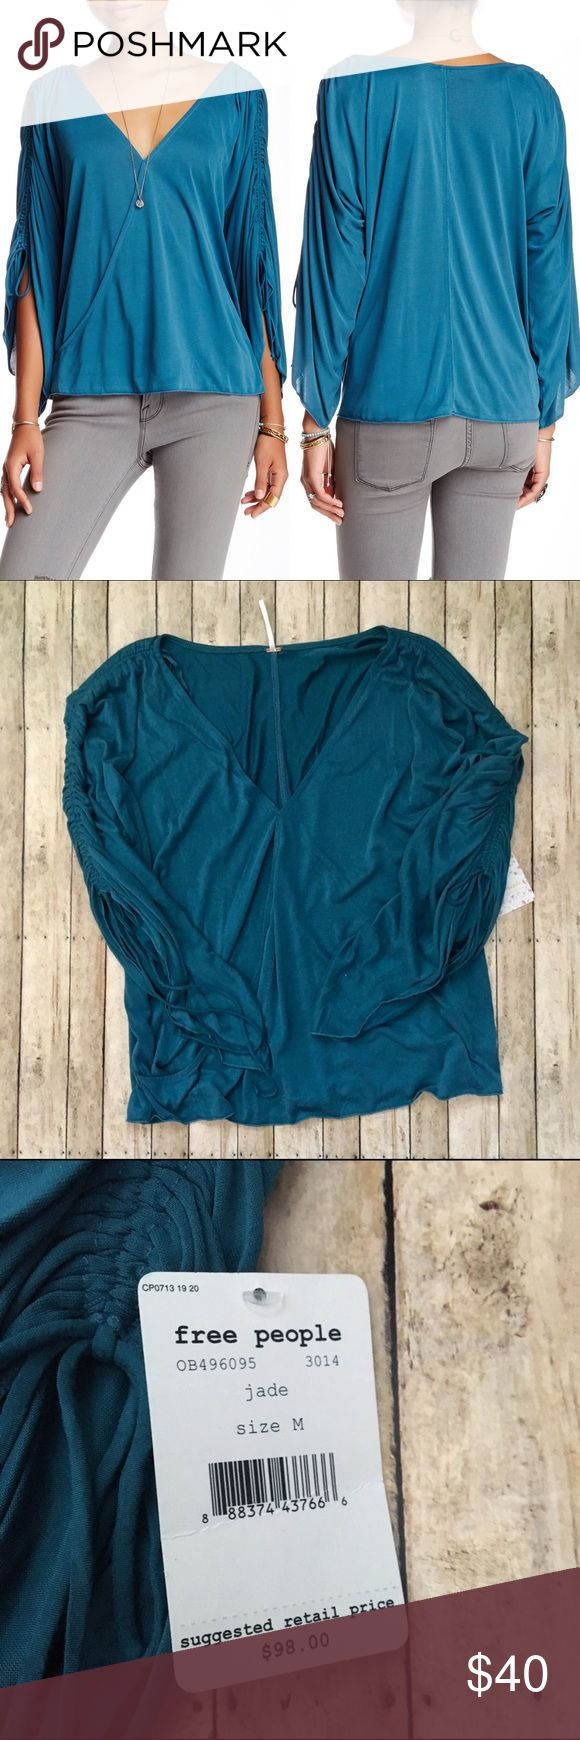 ❗️SALE TODAY NWT Free People Salt 'N' Peppa Blouse • NWT • Size Medium • Color Jade (blue/teal) • 3/4 sleeves with cinched detailing • Front is layered • 64% modal, 34% polyester • Free People Tops Blouses